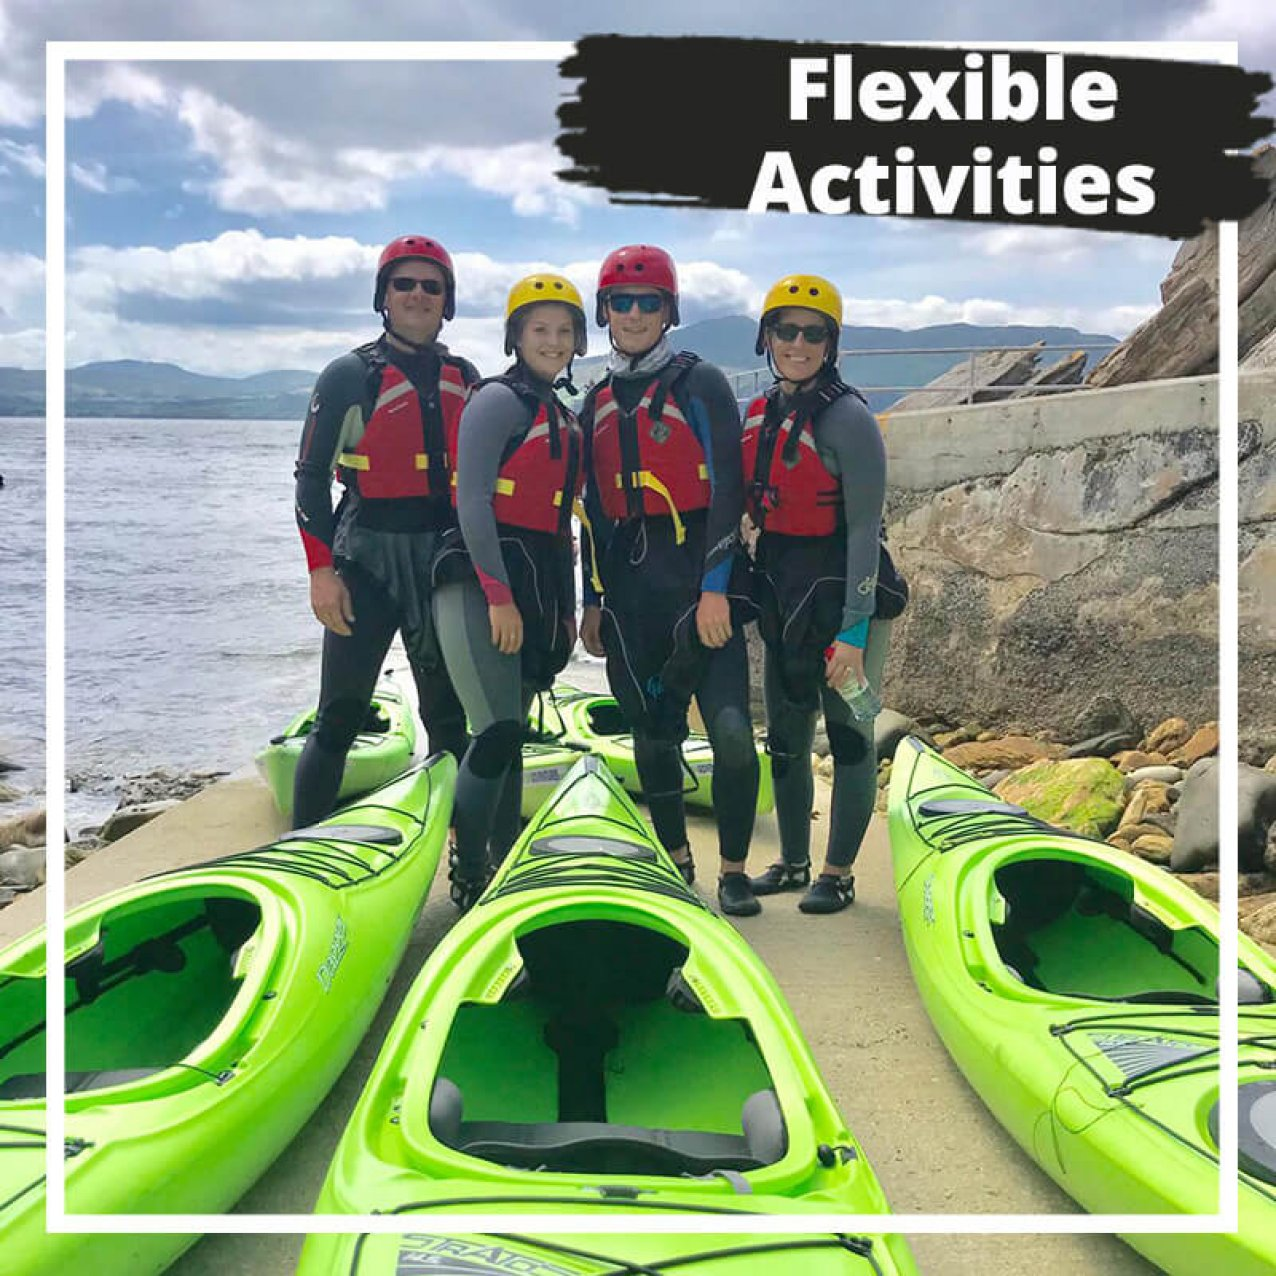 Flexible activities with family group about to kayak in Ireland